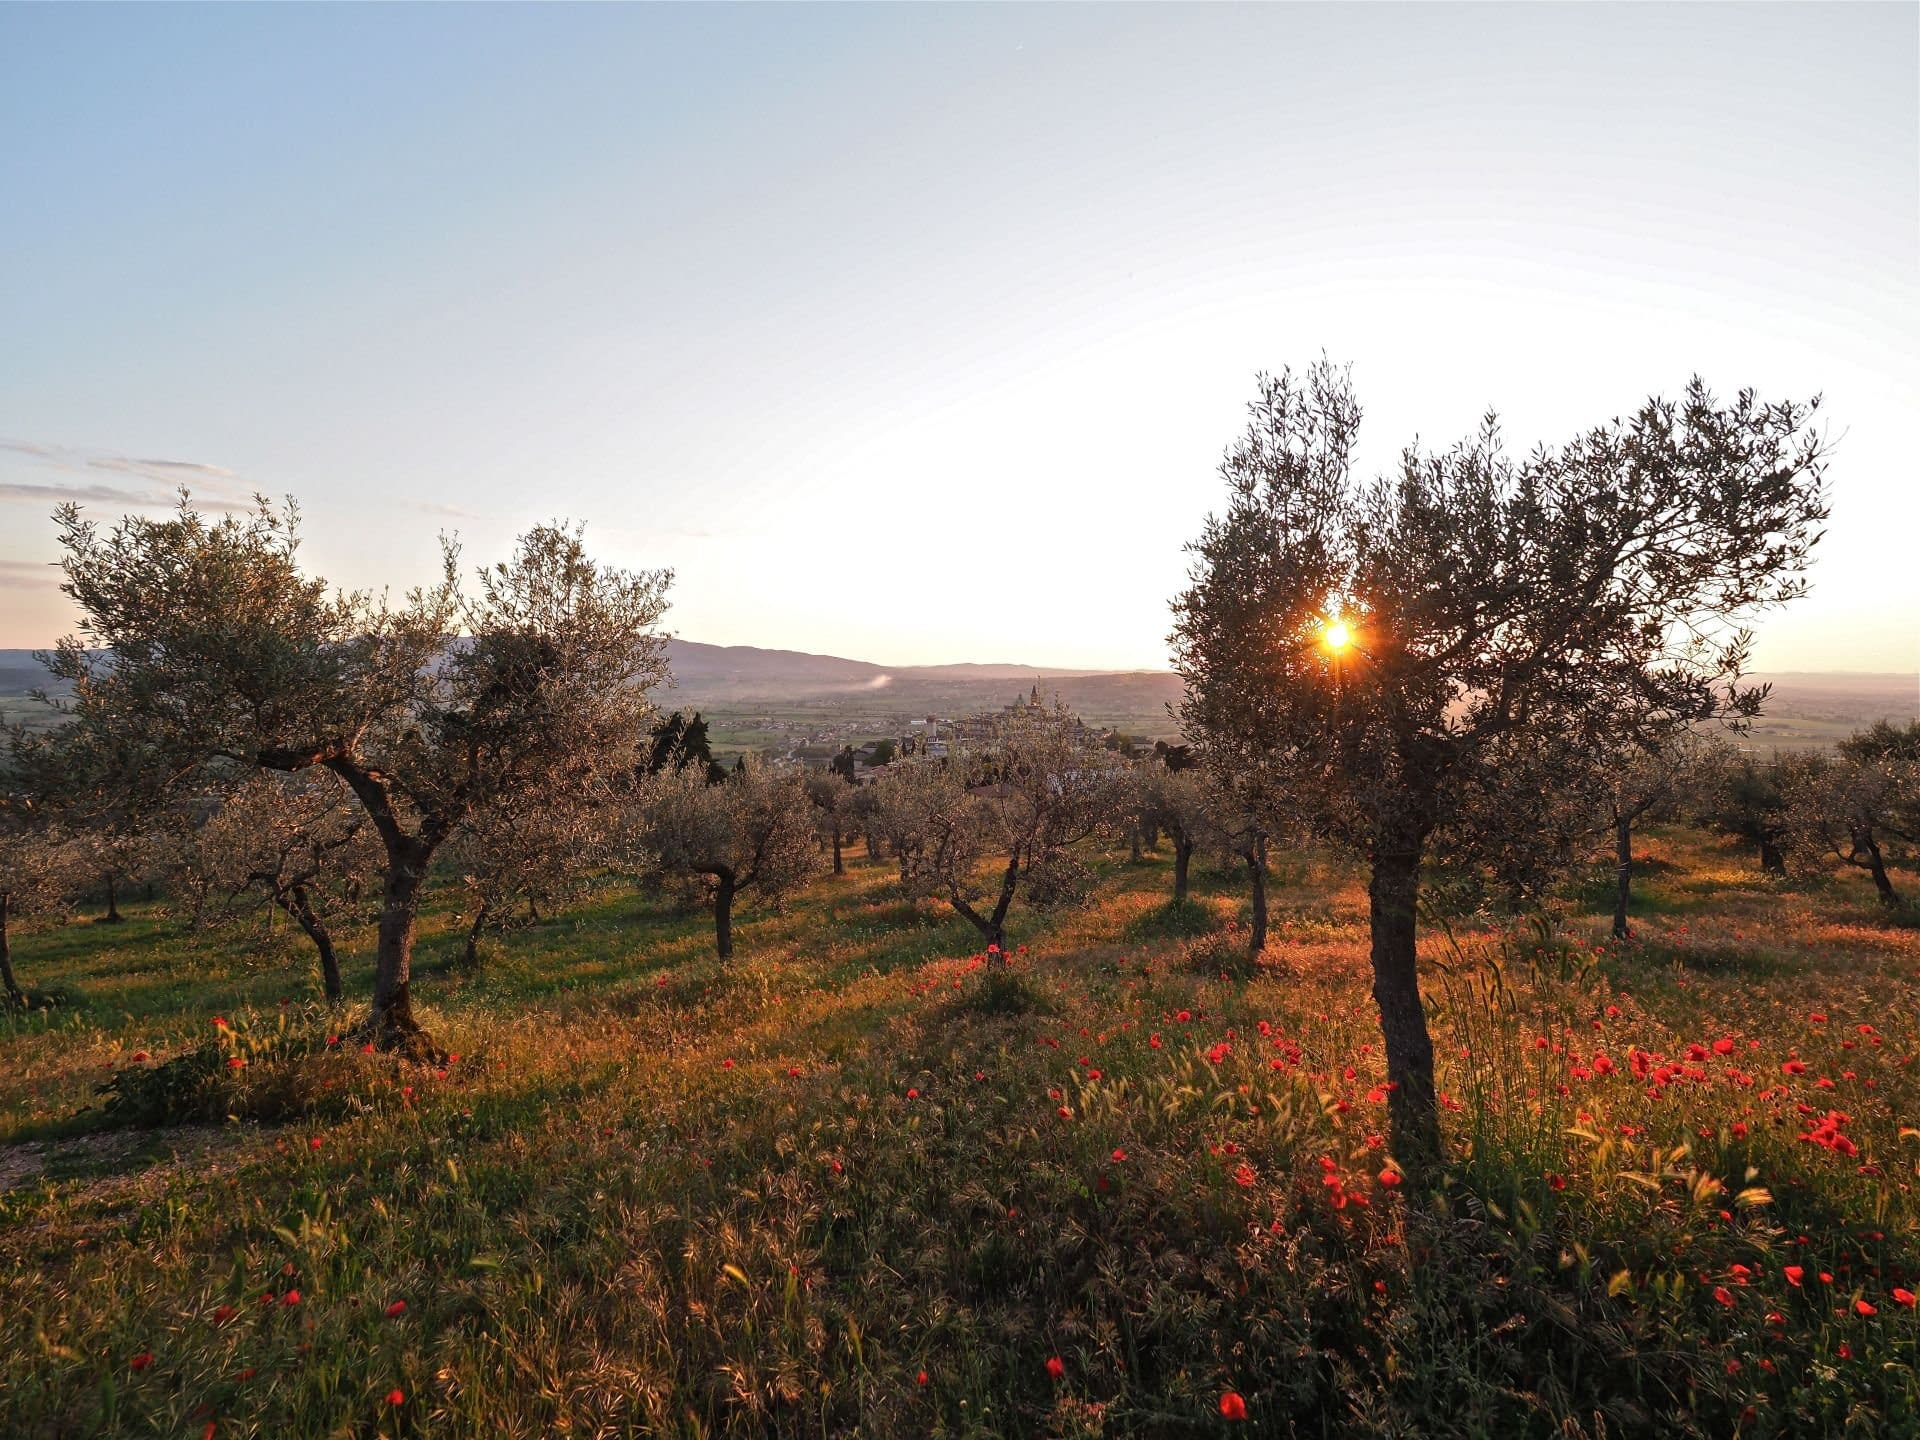 europe-competitions-production-the-best-olive-oils-awardwinning-producers-in-central-italy-prepare-for-harvest-olive-oil-times